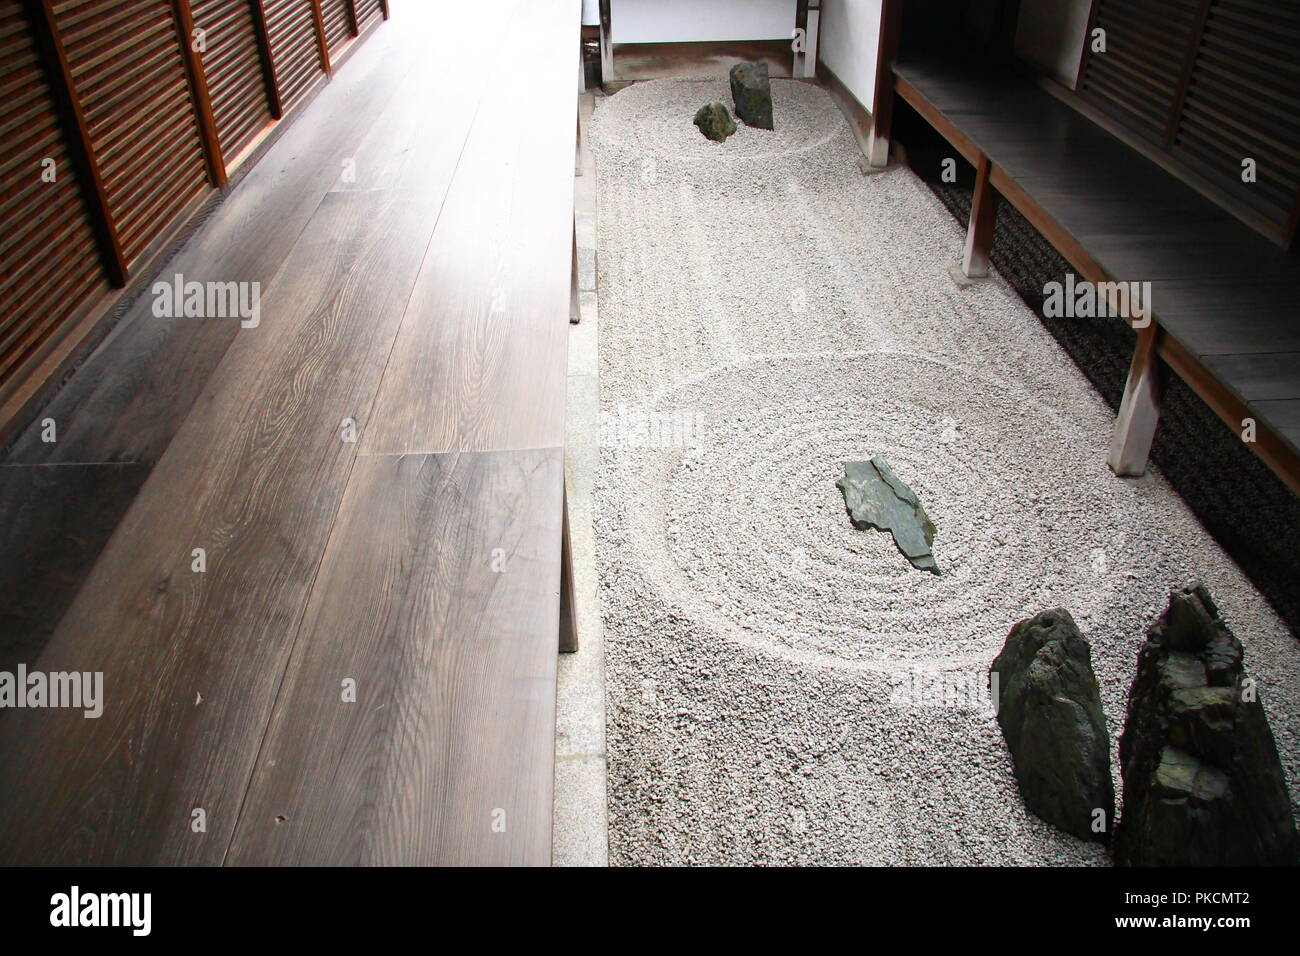 Japanese zen garden in Kyoto with big stones and raked gravel - Stock Image